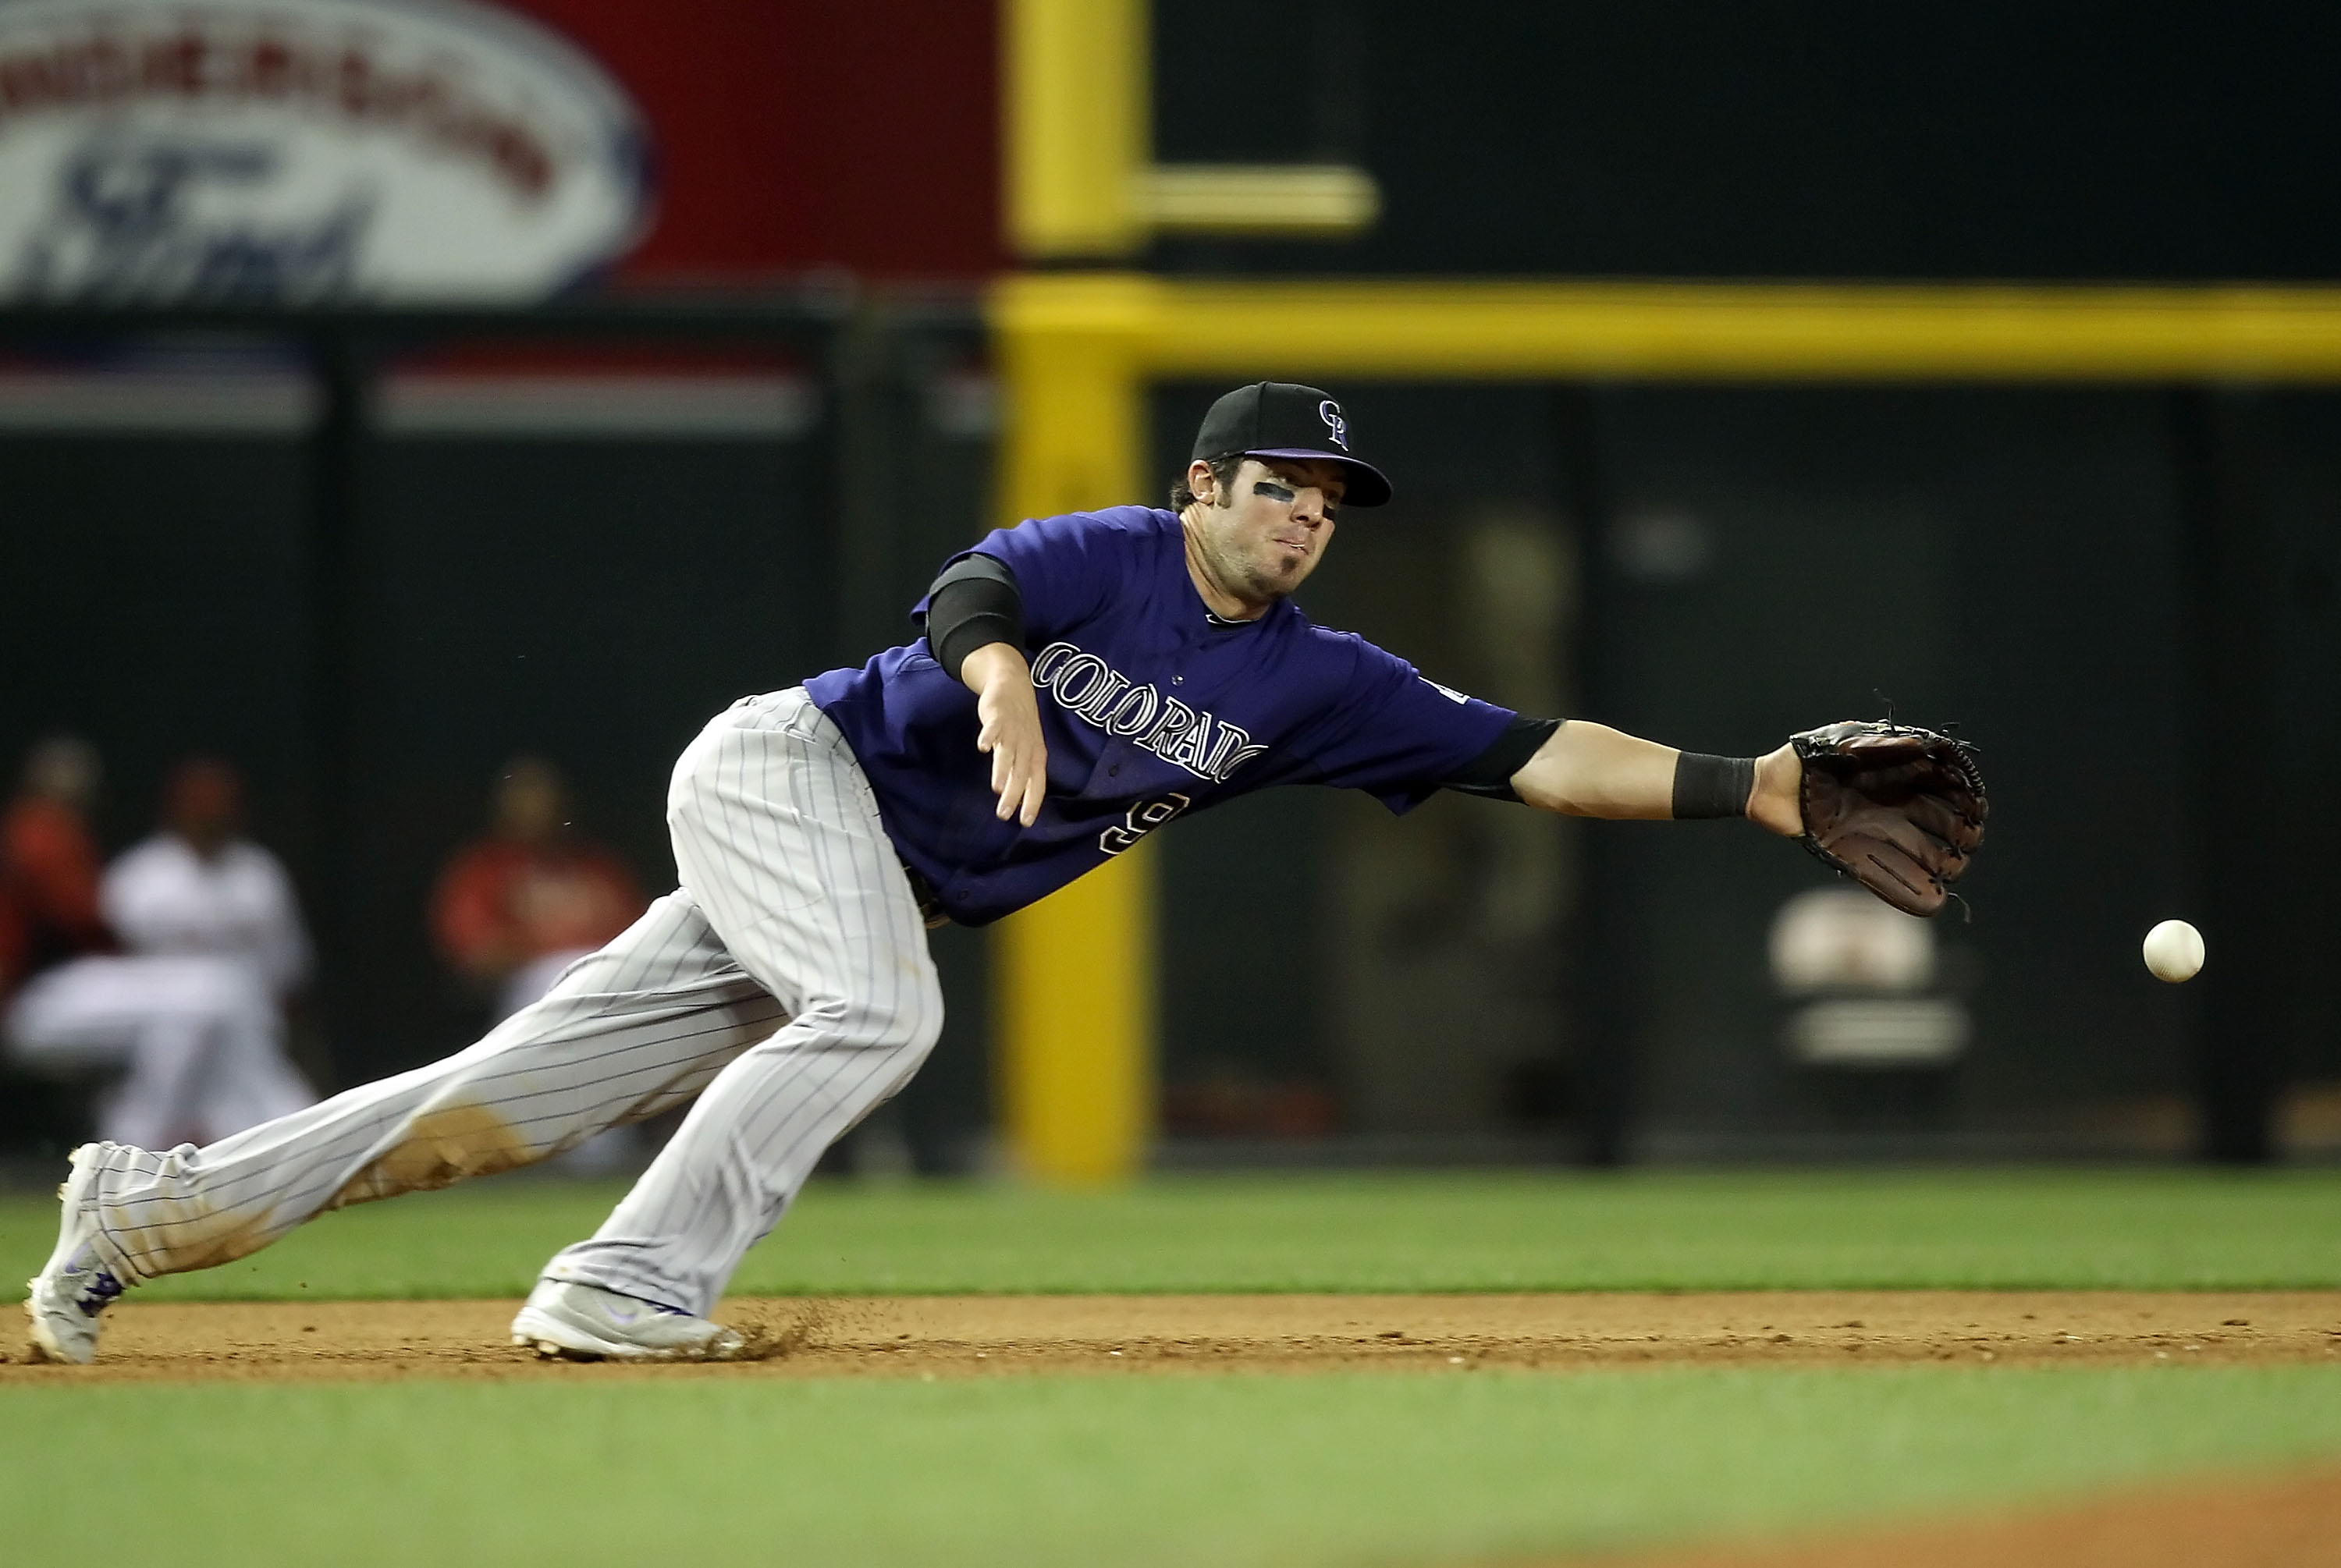 PHOENIX, AZ - MAY 05:  Infielder Ian Stewart #9 of the Colorado Rockies makes a diving attempt at a single hit by the Arizona Diamondbacks during the Major League Baseball game at Chase Field on May 5, 2011 in Phoenix, Arizona.  (Photo by Christian Peters